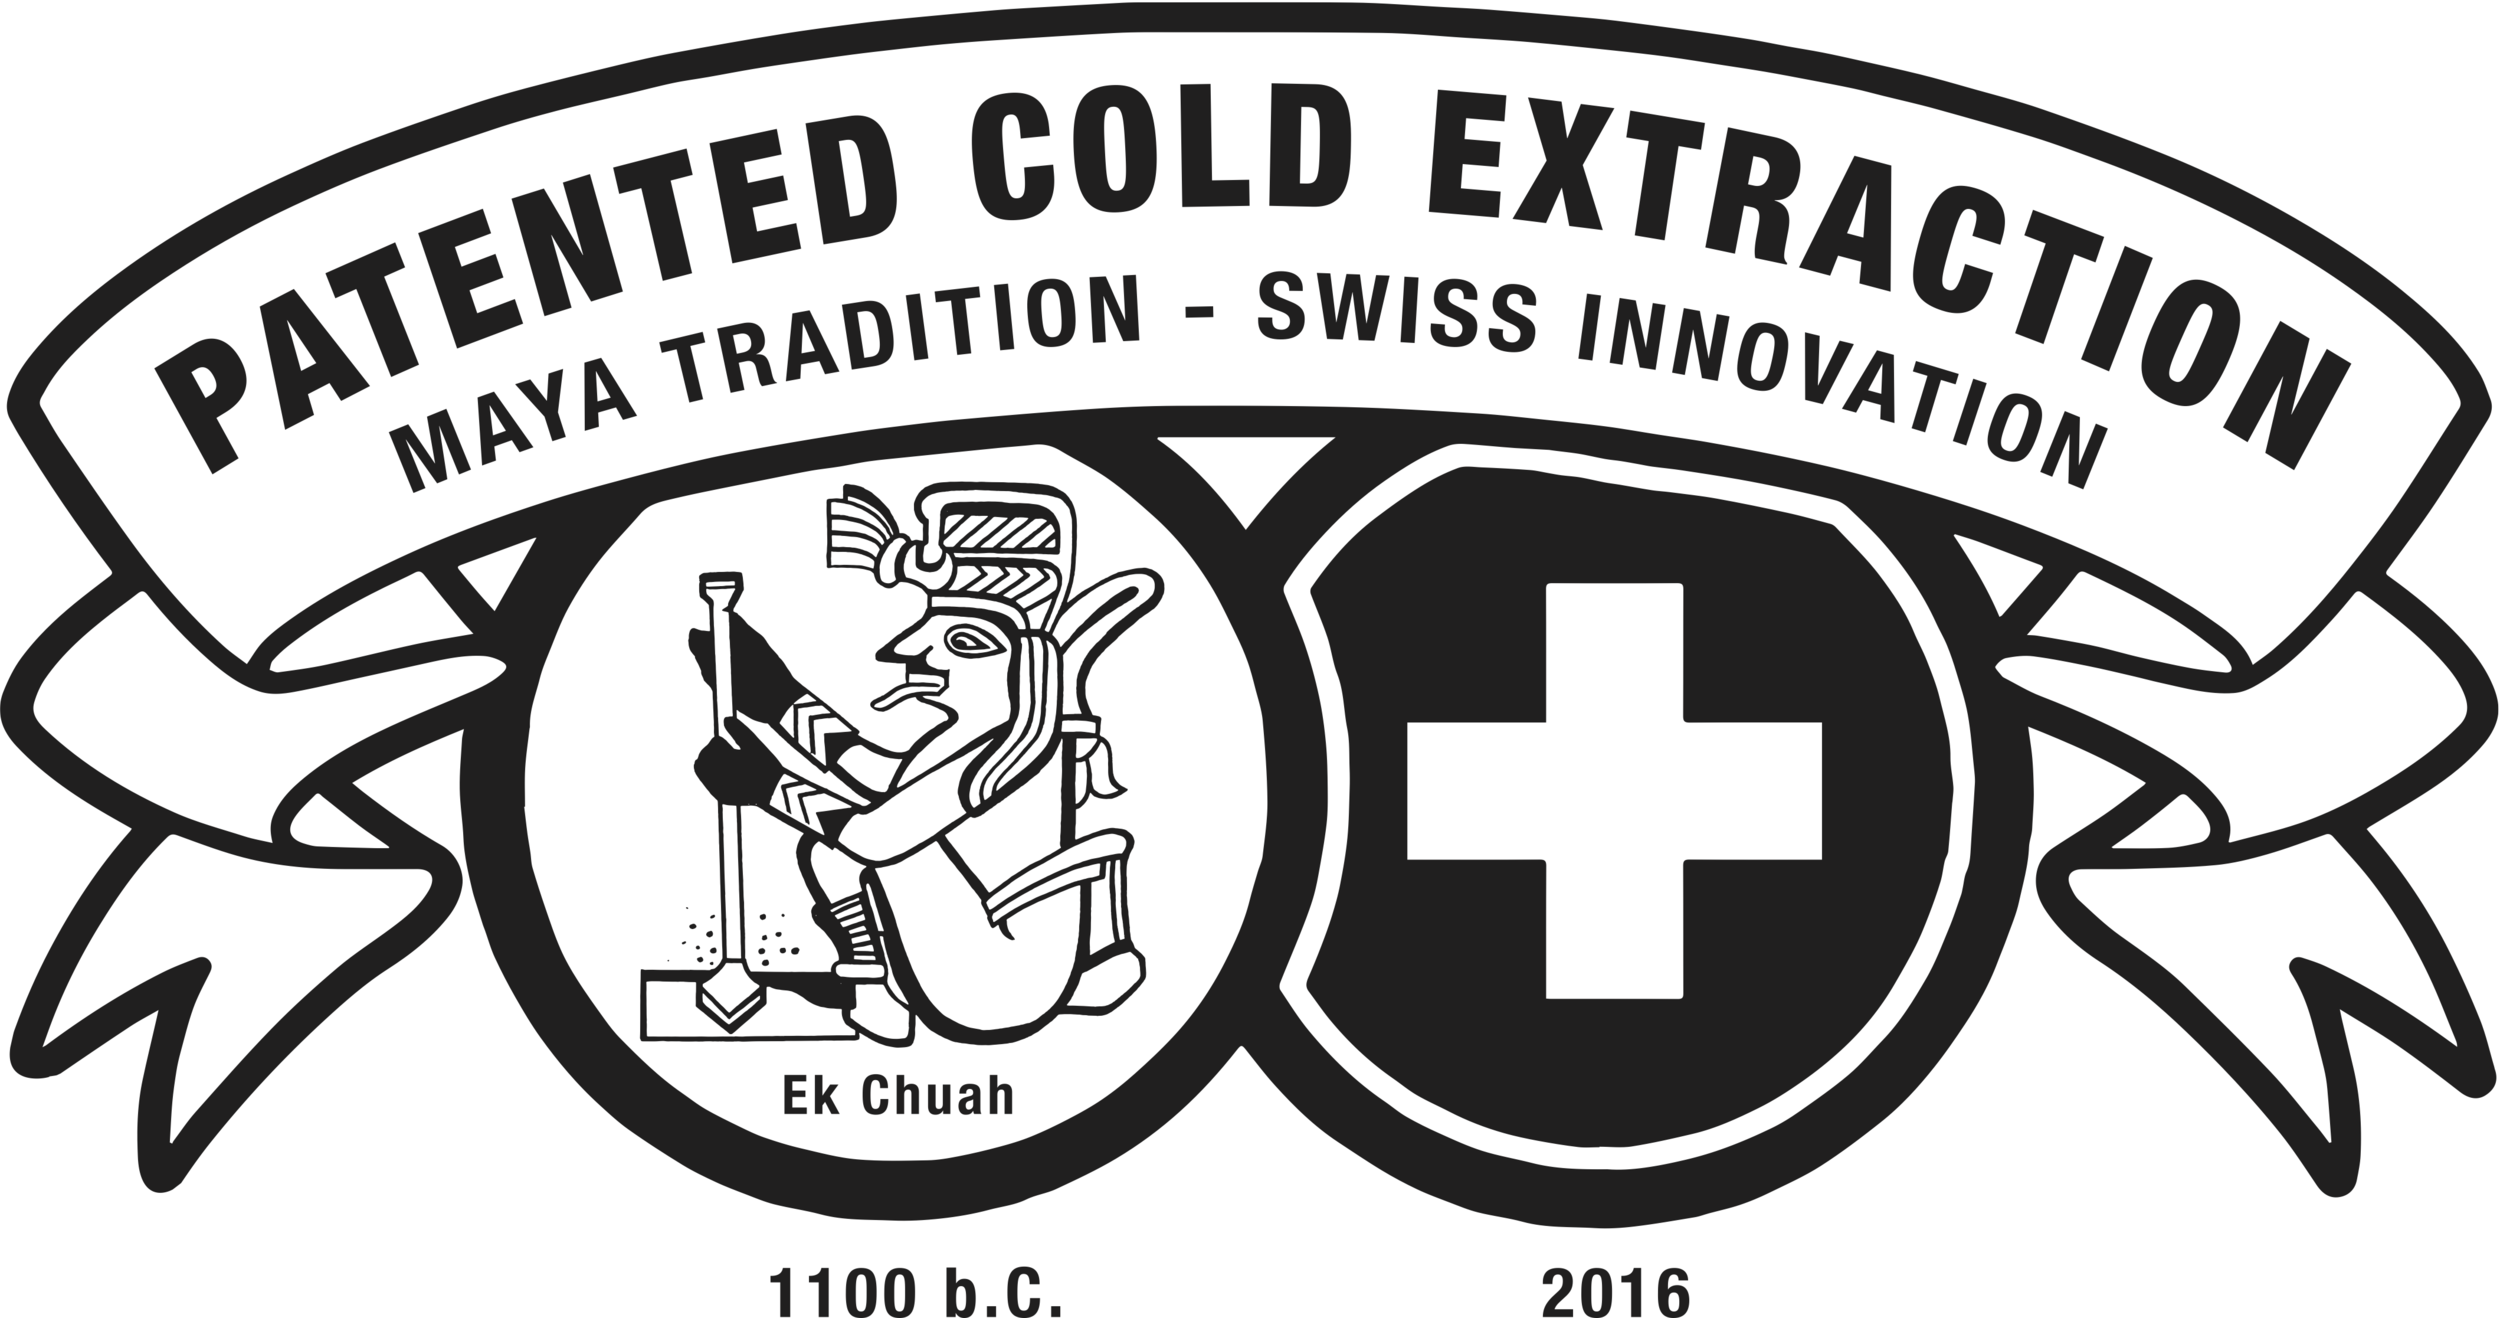 oro_patented_cold_extraction_2016.png